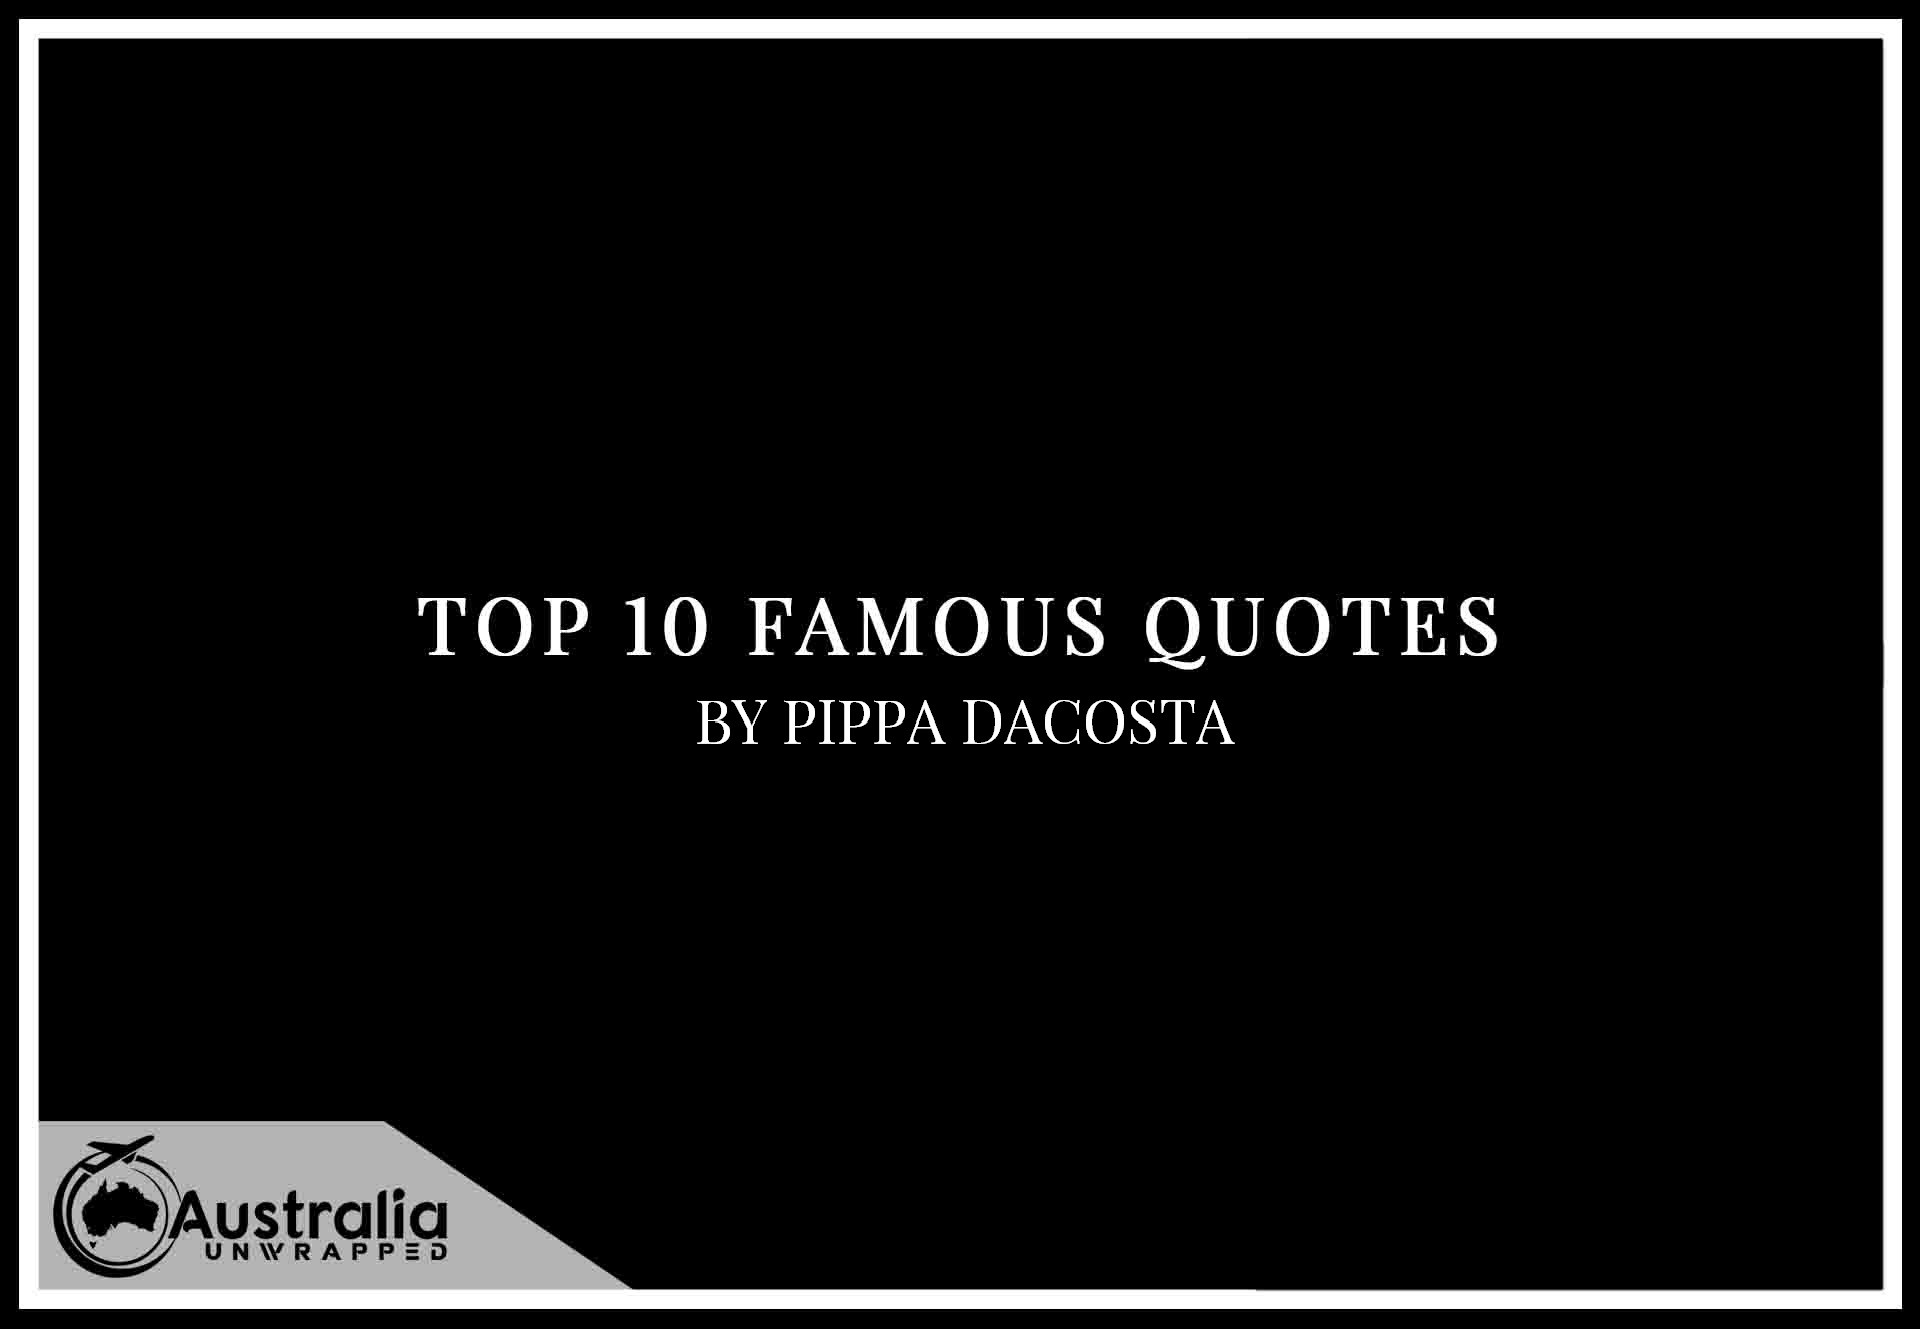 Top 10 Famous Quotes by Author Pippa DaCosta